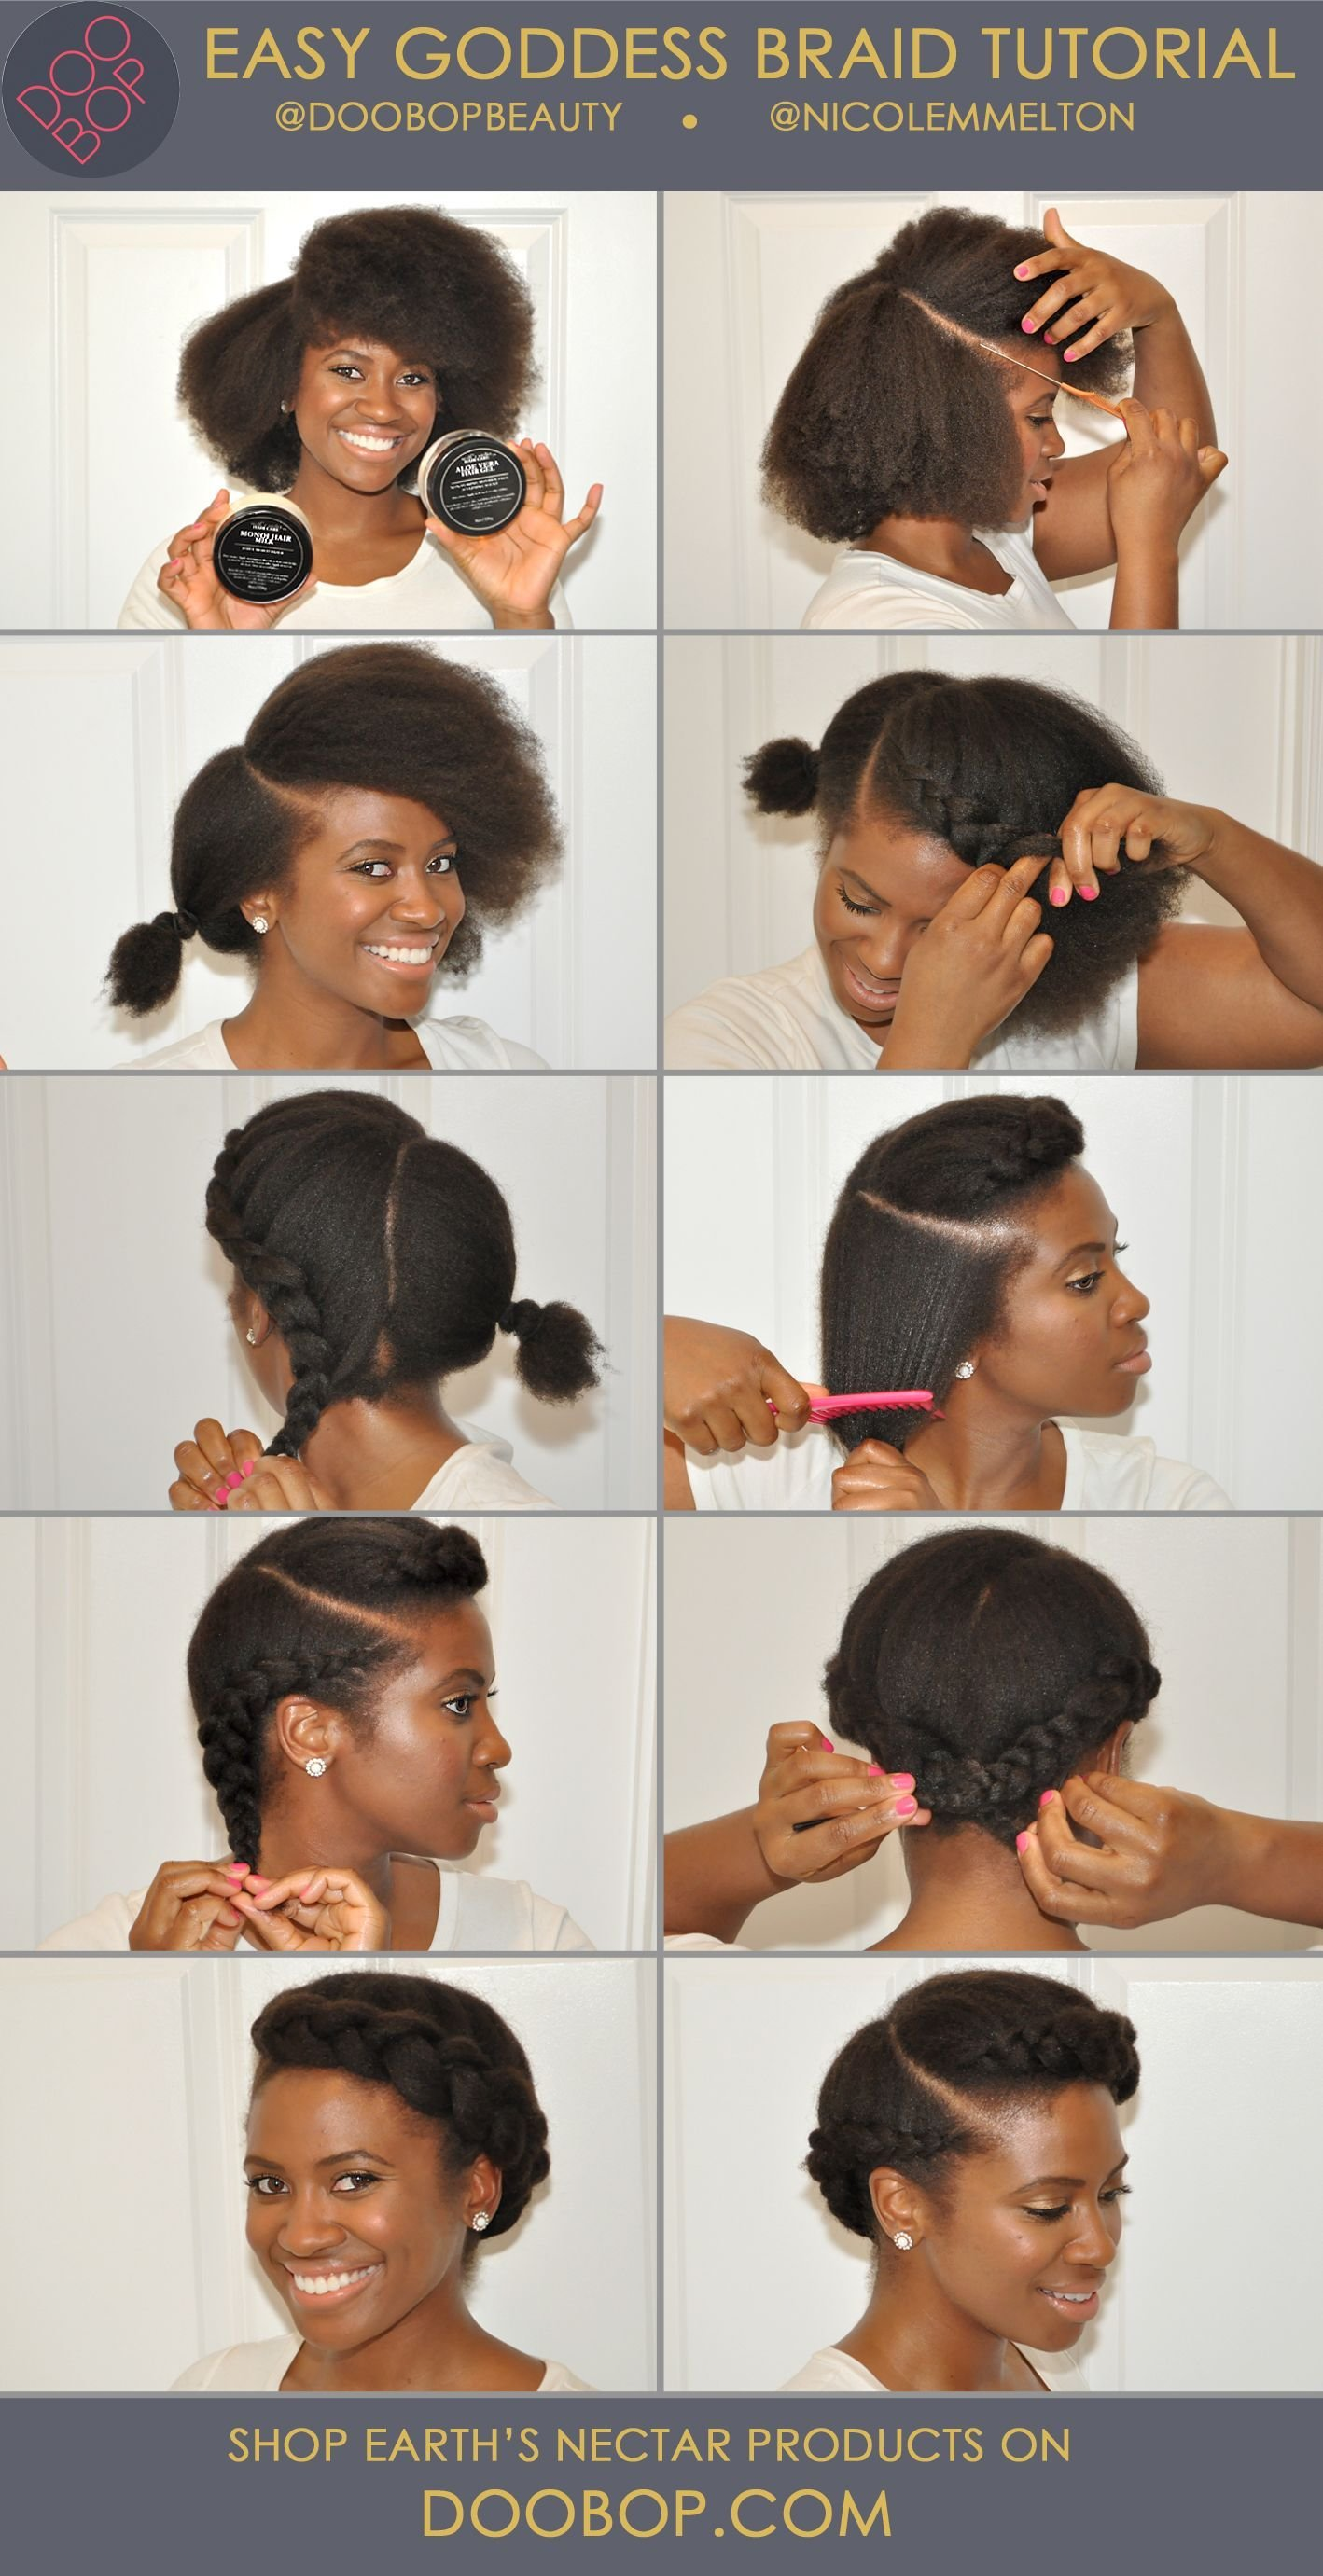 The Best Easy Natural Hair How To Goddess Braid With Earth's Pictures